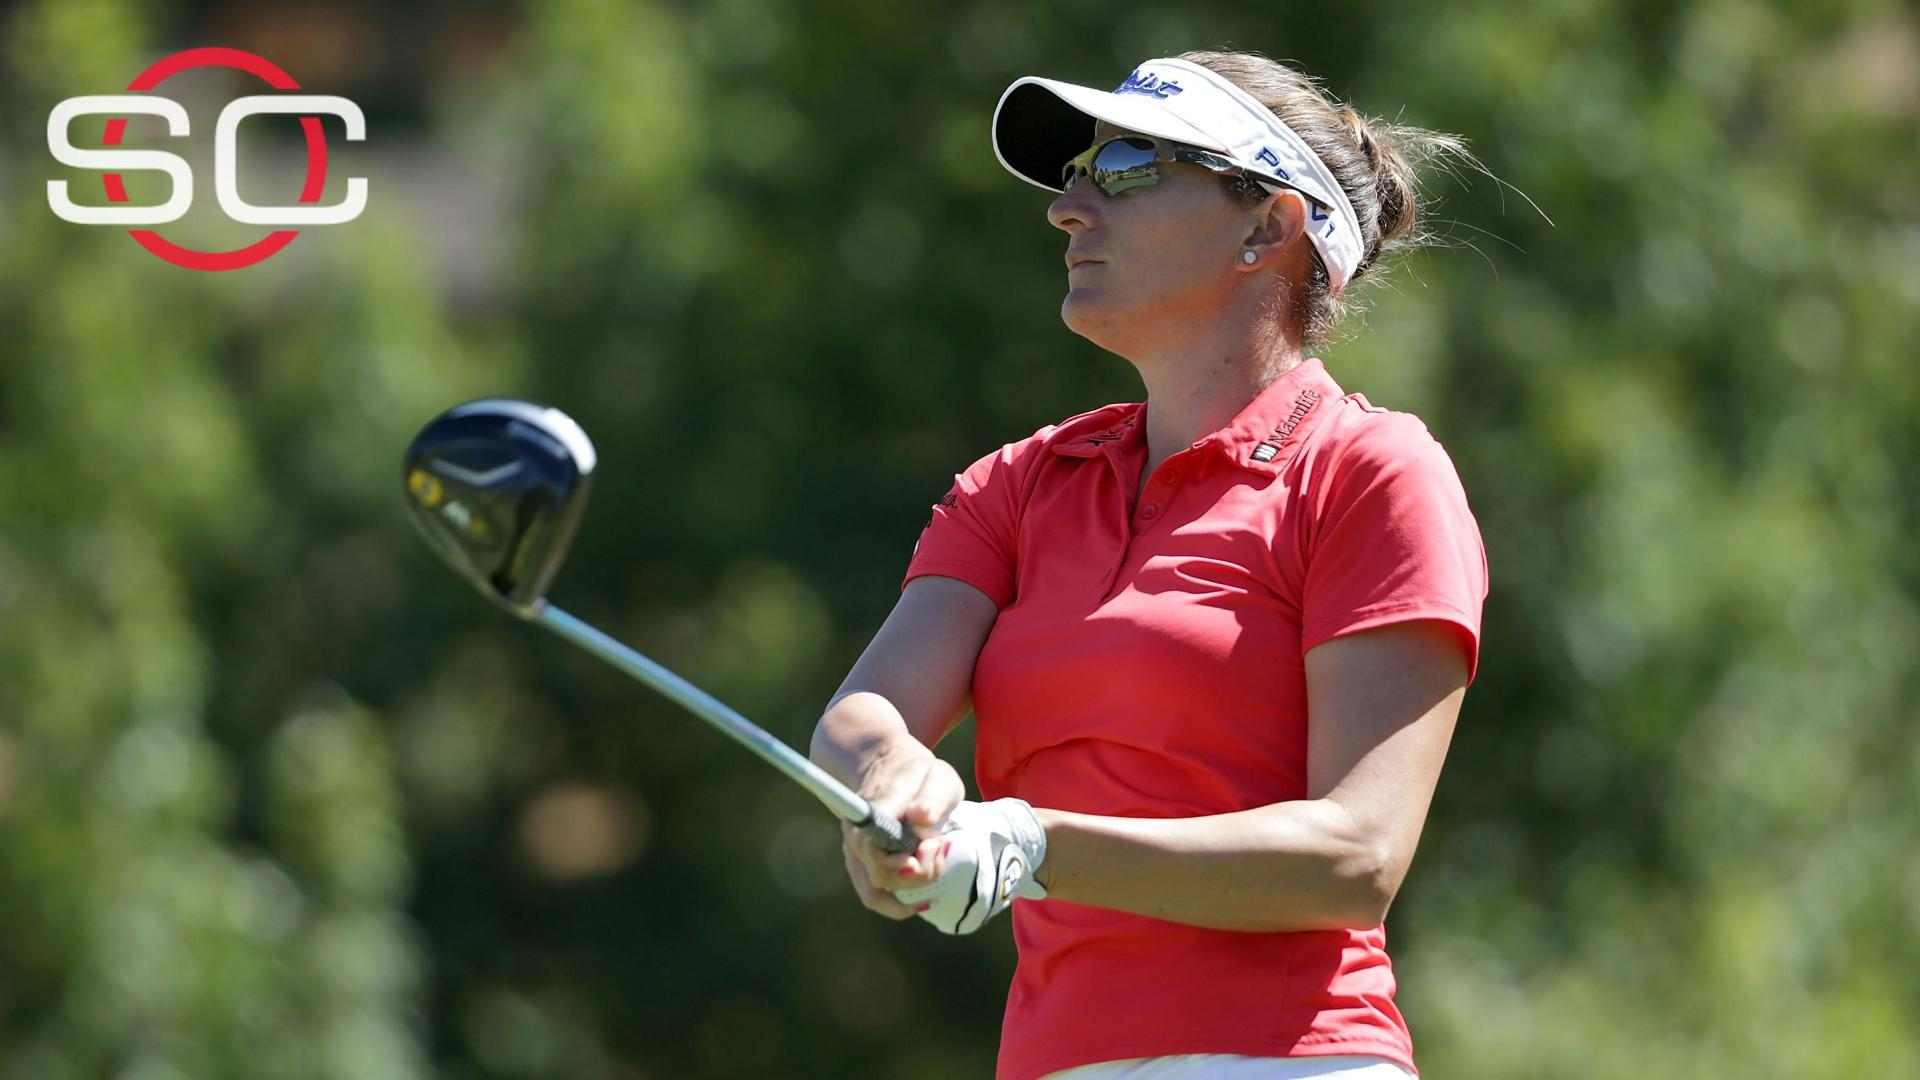 Lee leads the way at U.S. Open as big names struggle